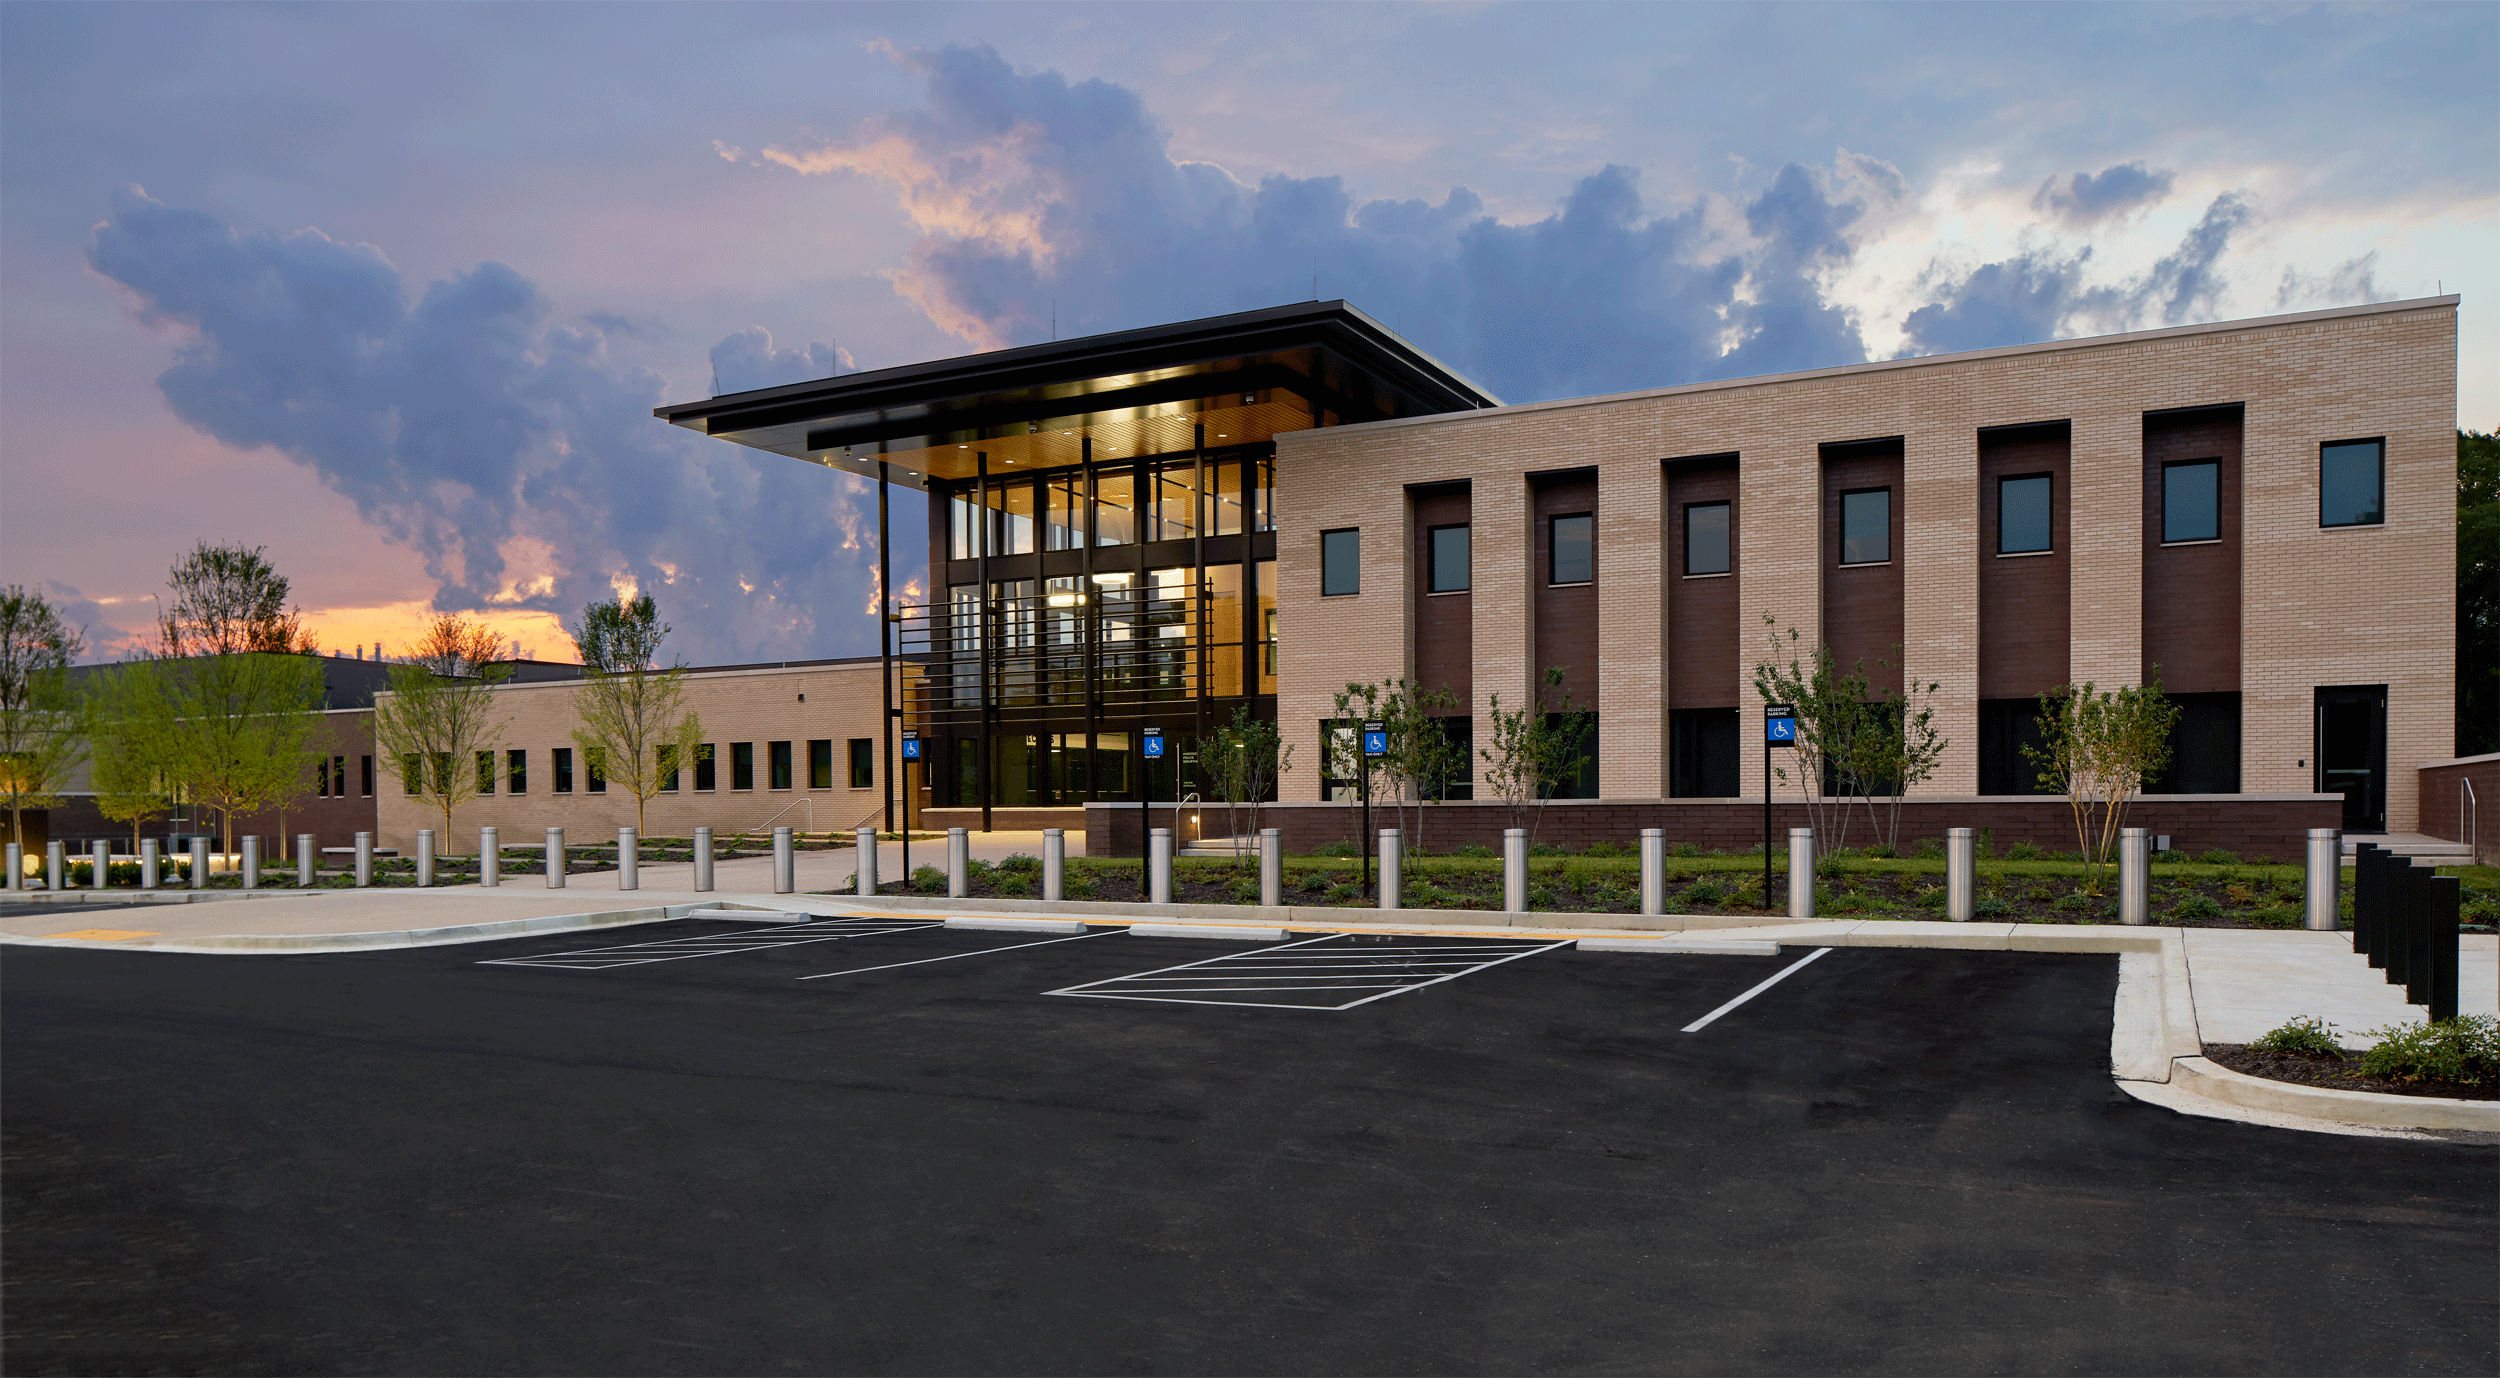 City of Murfreesboro Police Headquarters